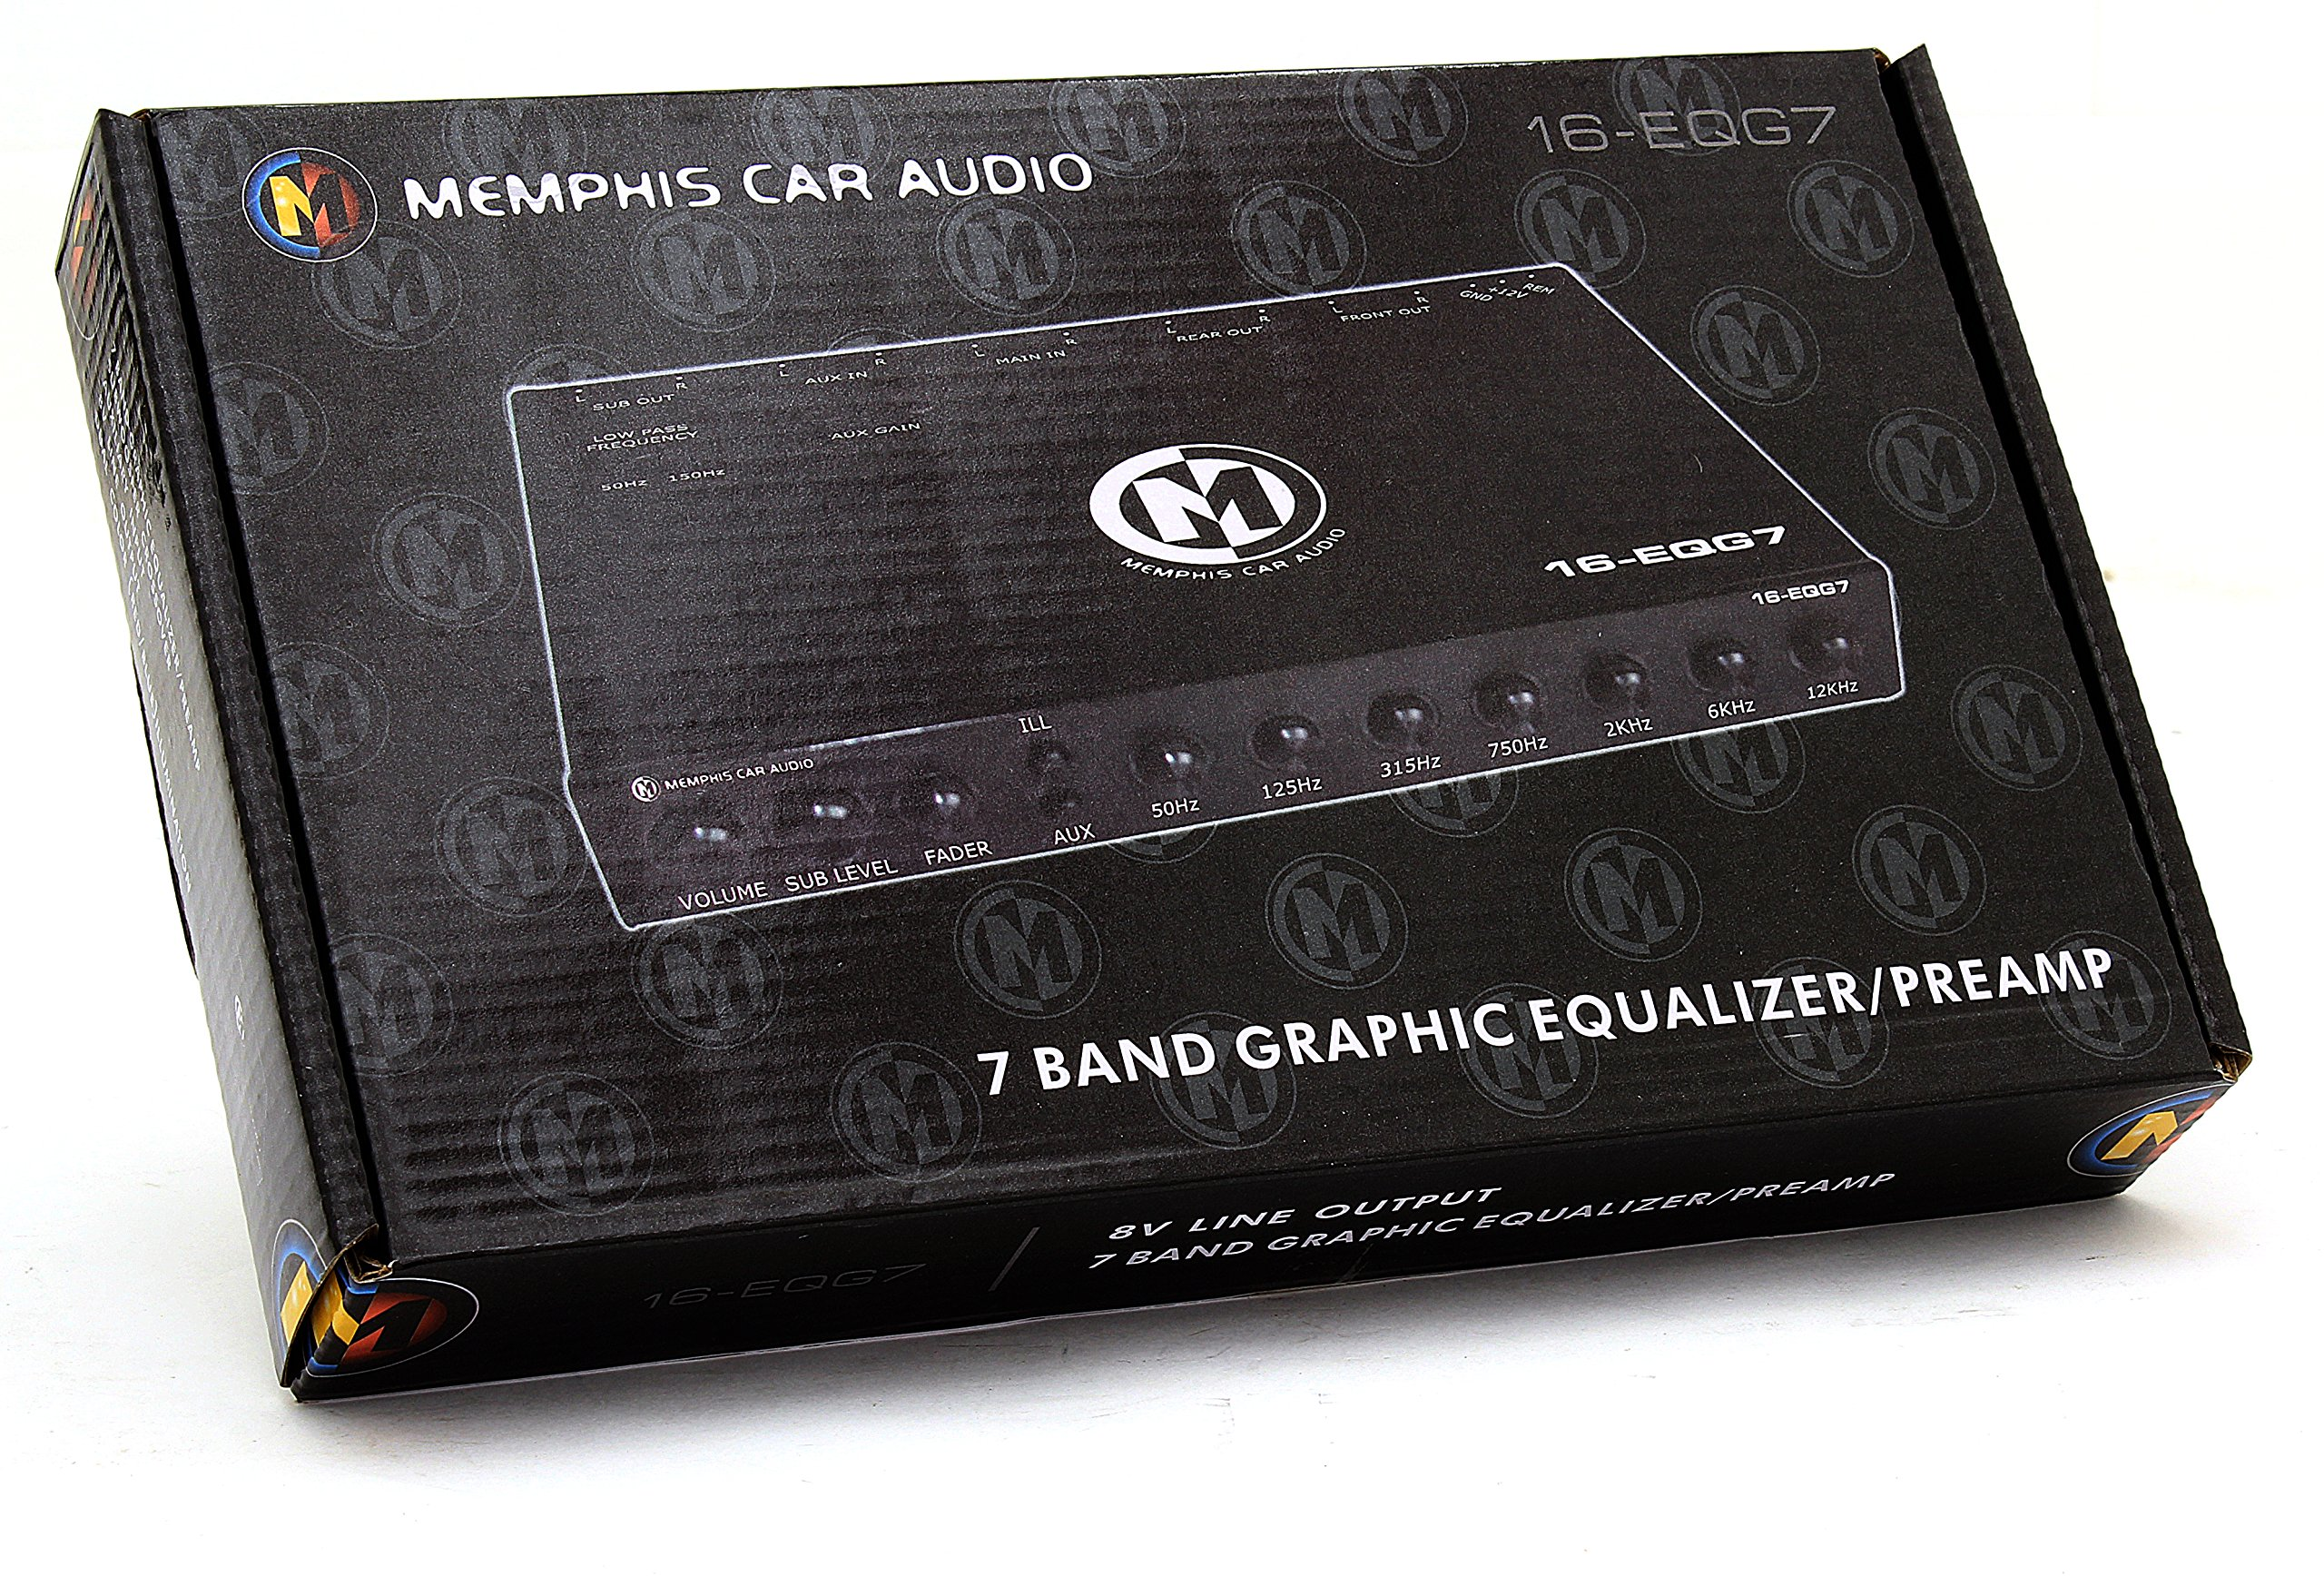 16-EQG7 - Memphis 7-Band Graphic Equalizer / Preamp